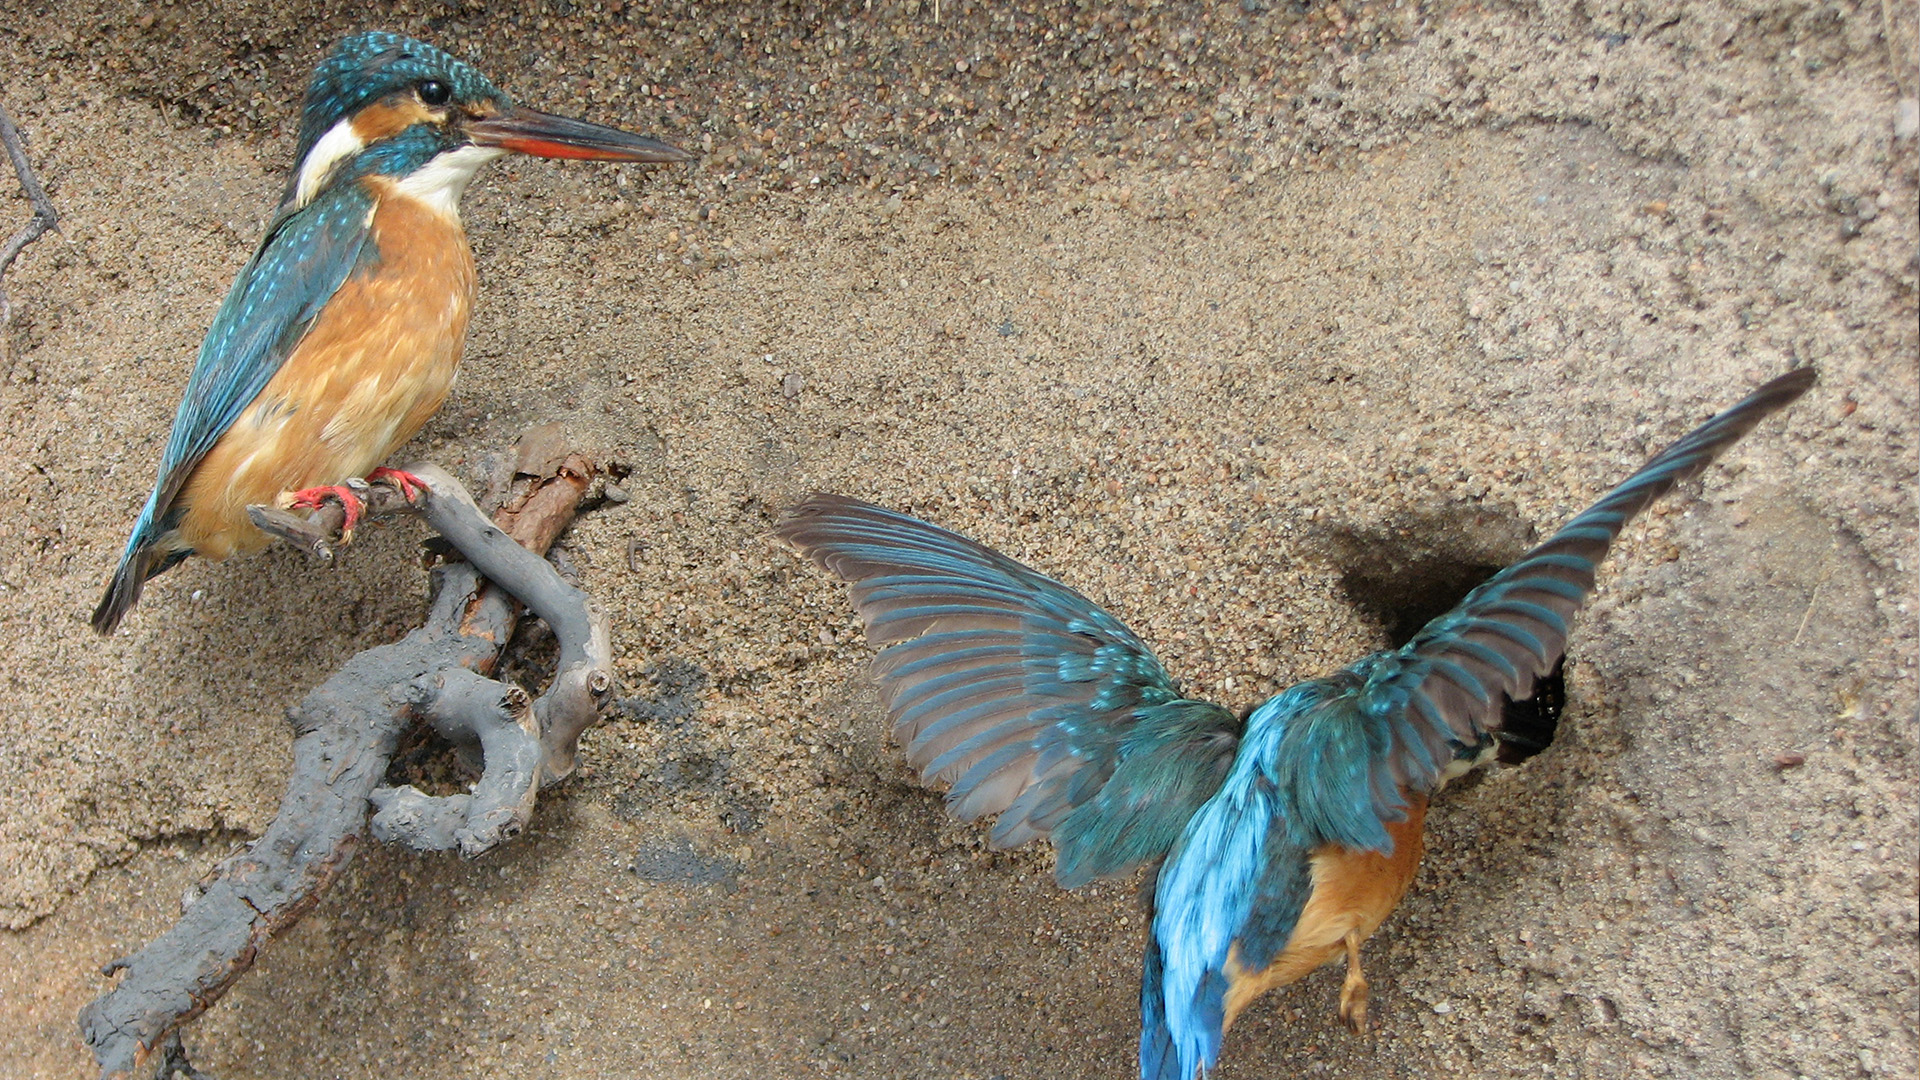 Pair of Common kingfishers at riverbank in Veikko Salkio´s Natural History Collection.